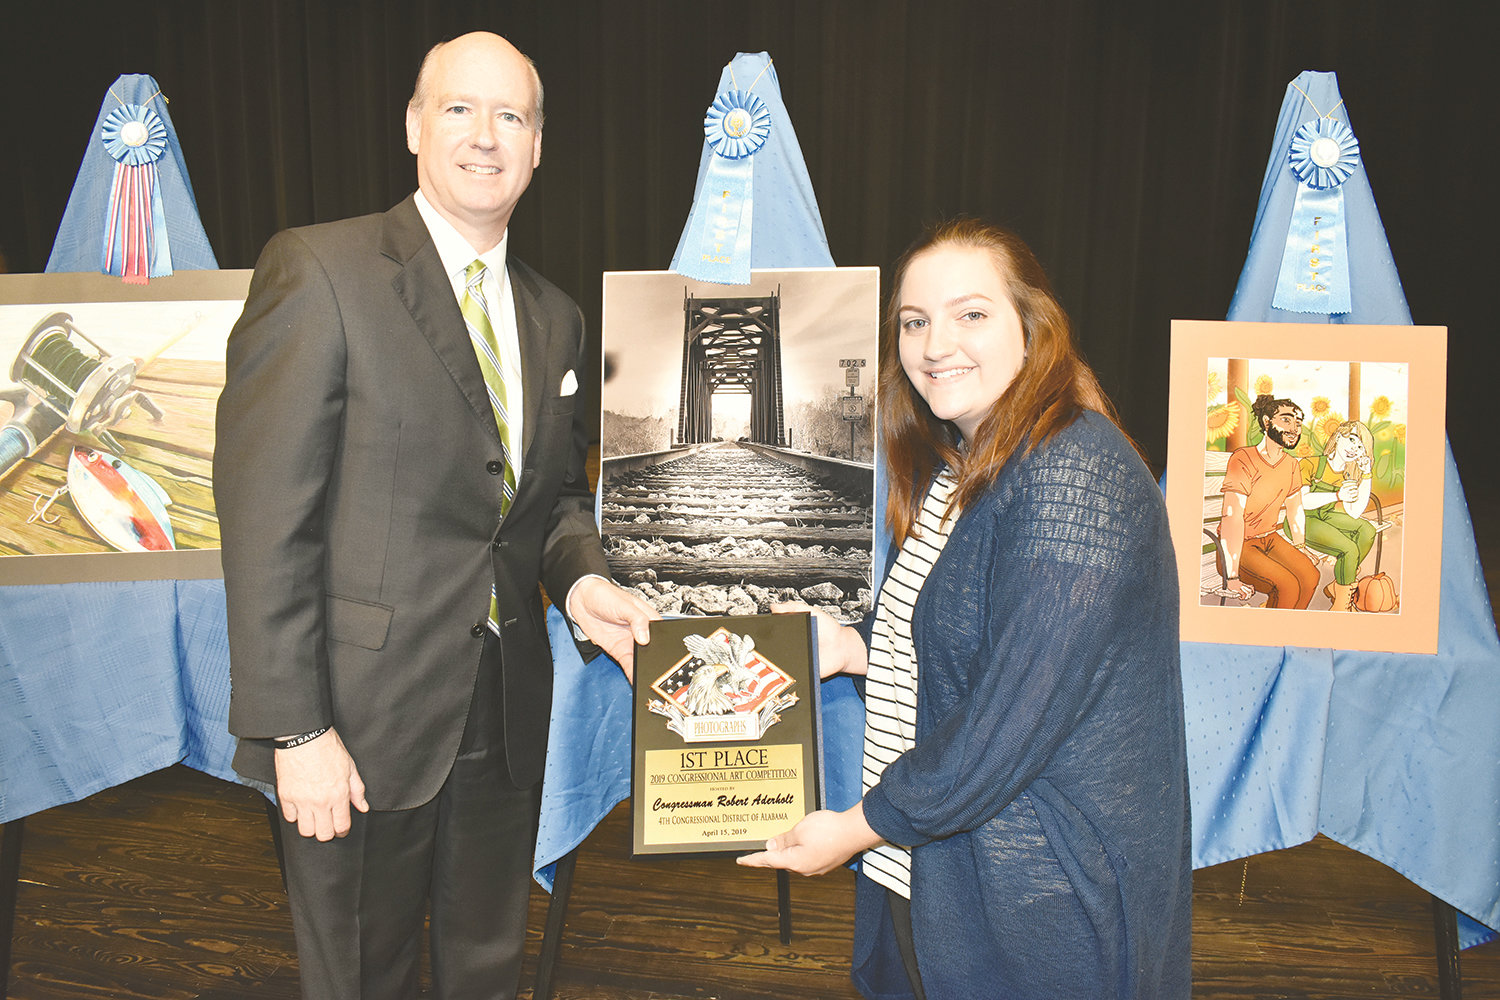 U.S. Rep. Robert Aderholt hosted his District 4 Congressional Art Competition Monday at Jasper High School, where an awards ceremony held at the high school auditorium. The event, which rotates around the district, honored student artists from across the 4th Congressional District. Ivy Trotter, a junior at Jasper High School, won first place in the Photographs Division, using a photograph she took in Cordova at the railroad trestle in November 2017.